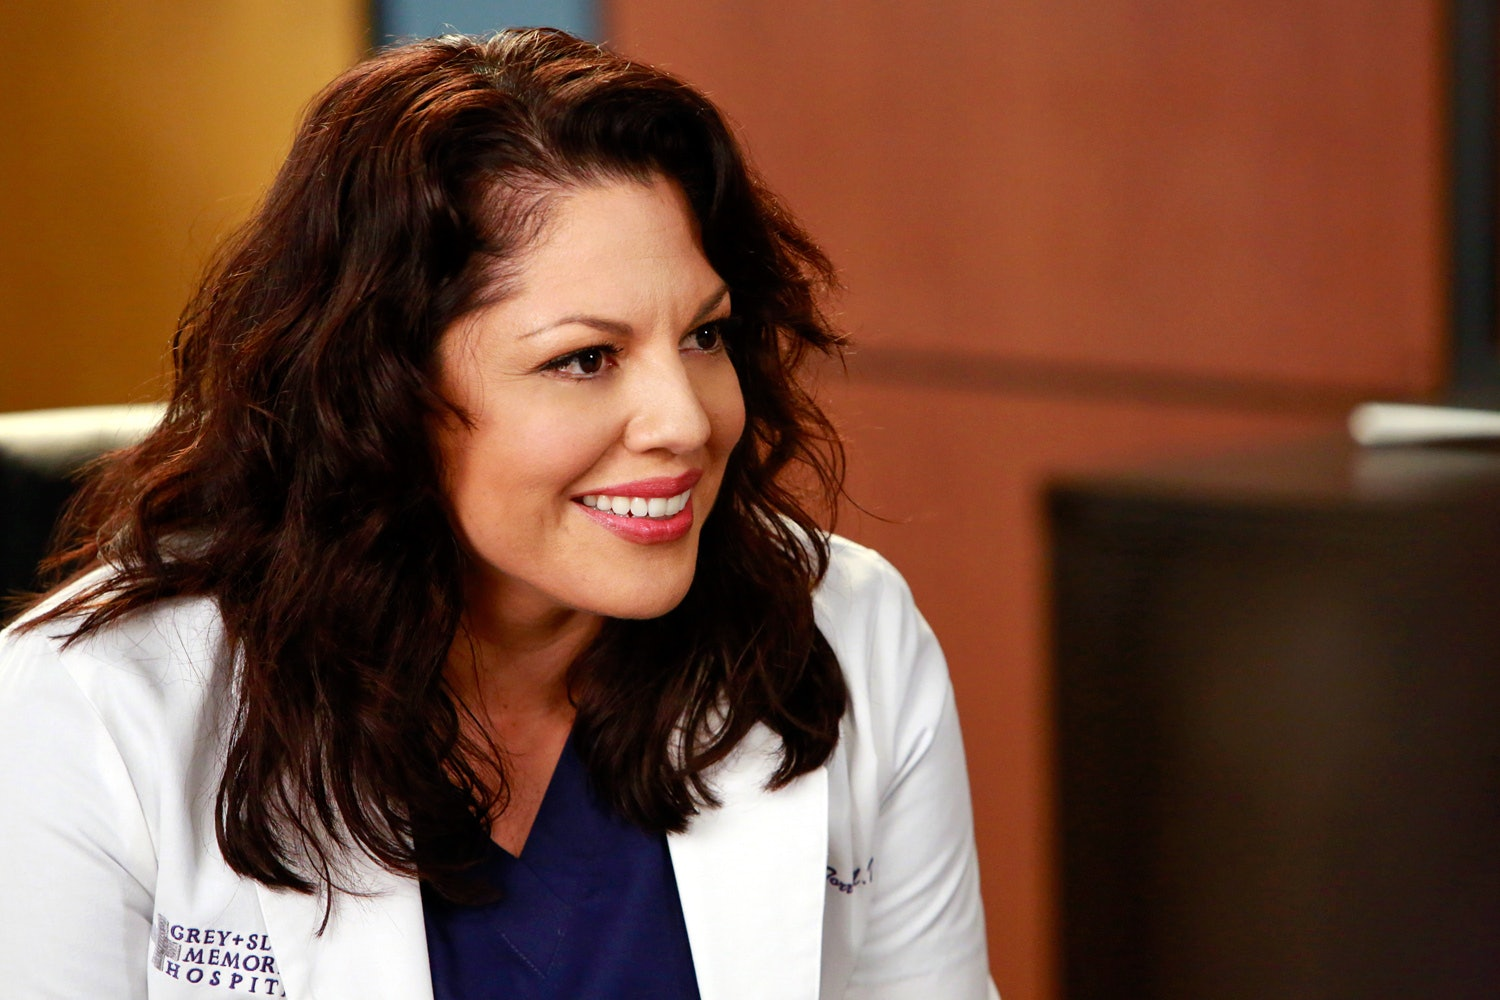 What S Sara Ramirez Doing After Grey S Anatomy Callie Torres Has Been In Everything From Music Videos To Ted Talks Irl